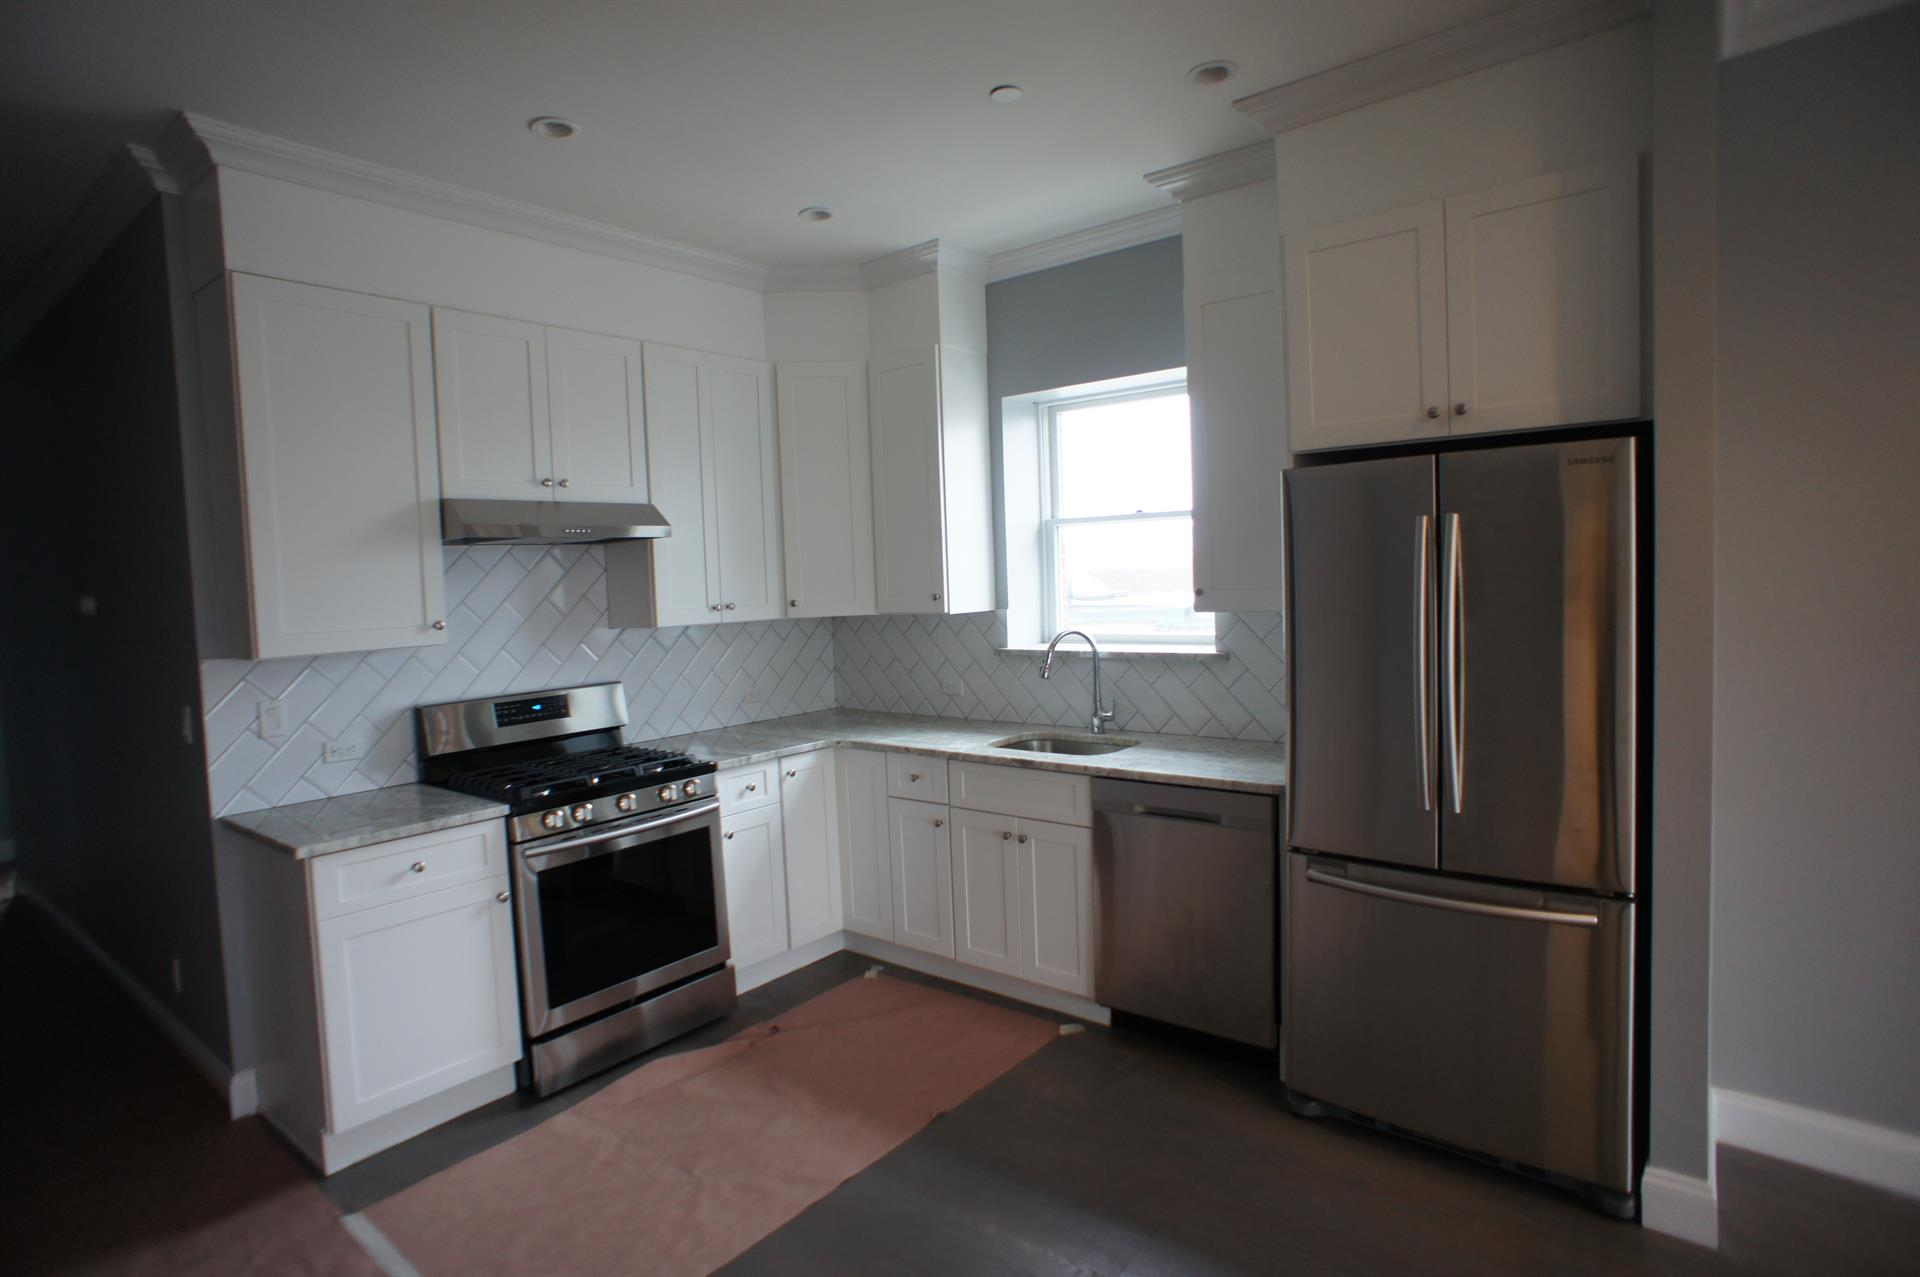 Additional photo for property listing at 1842 79th Street #2b  Brooklyn, New York 11214 United States